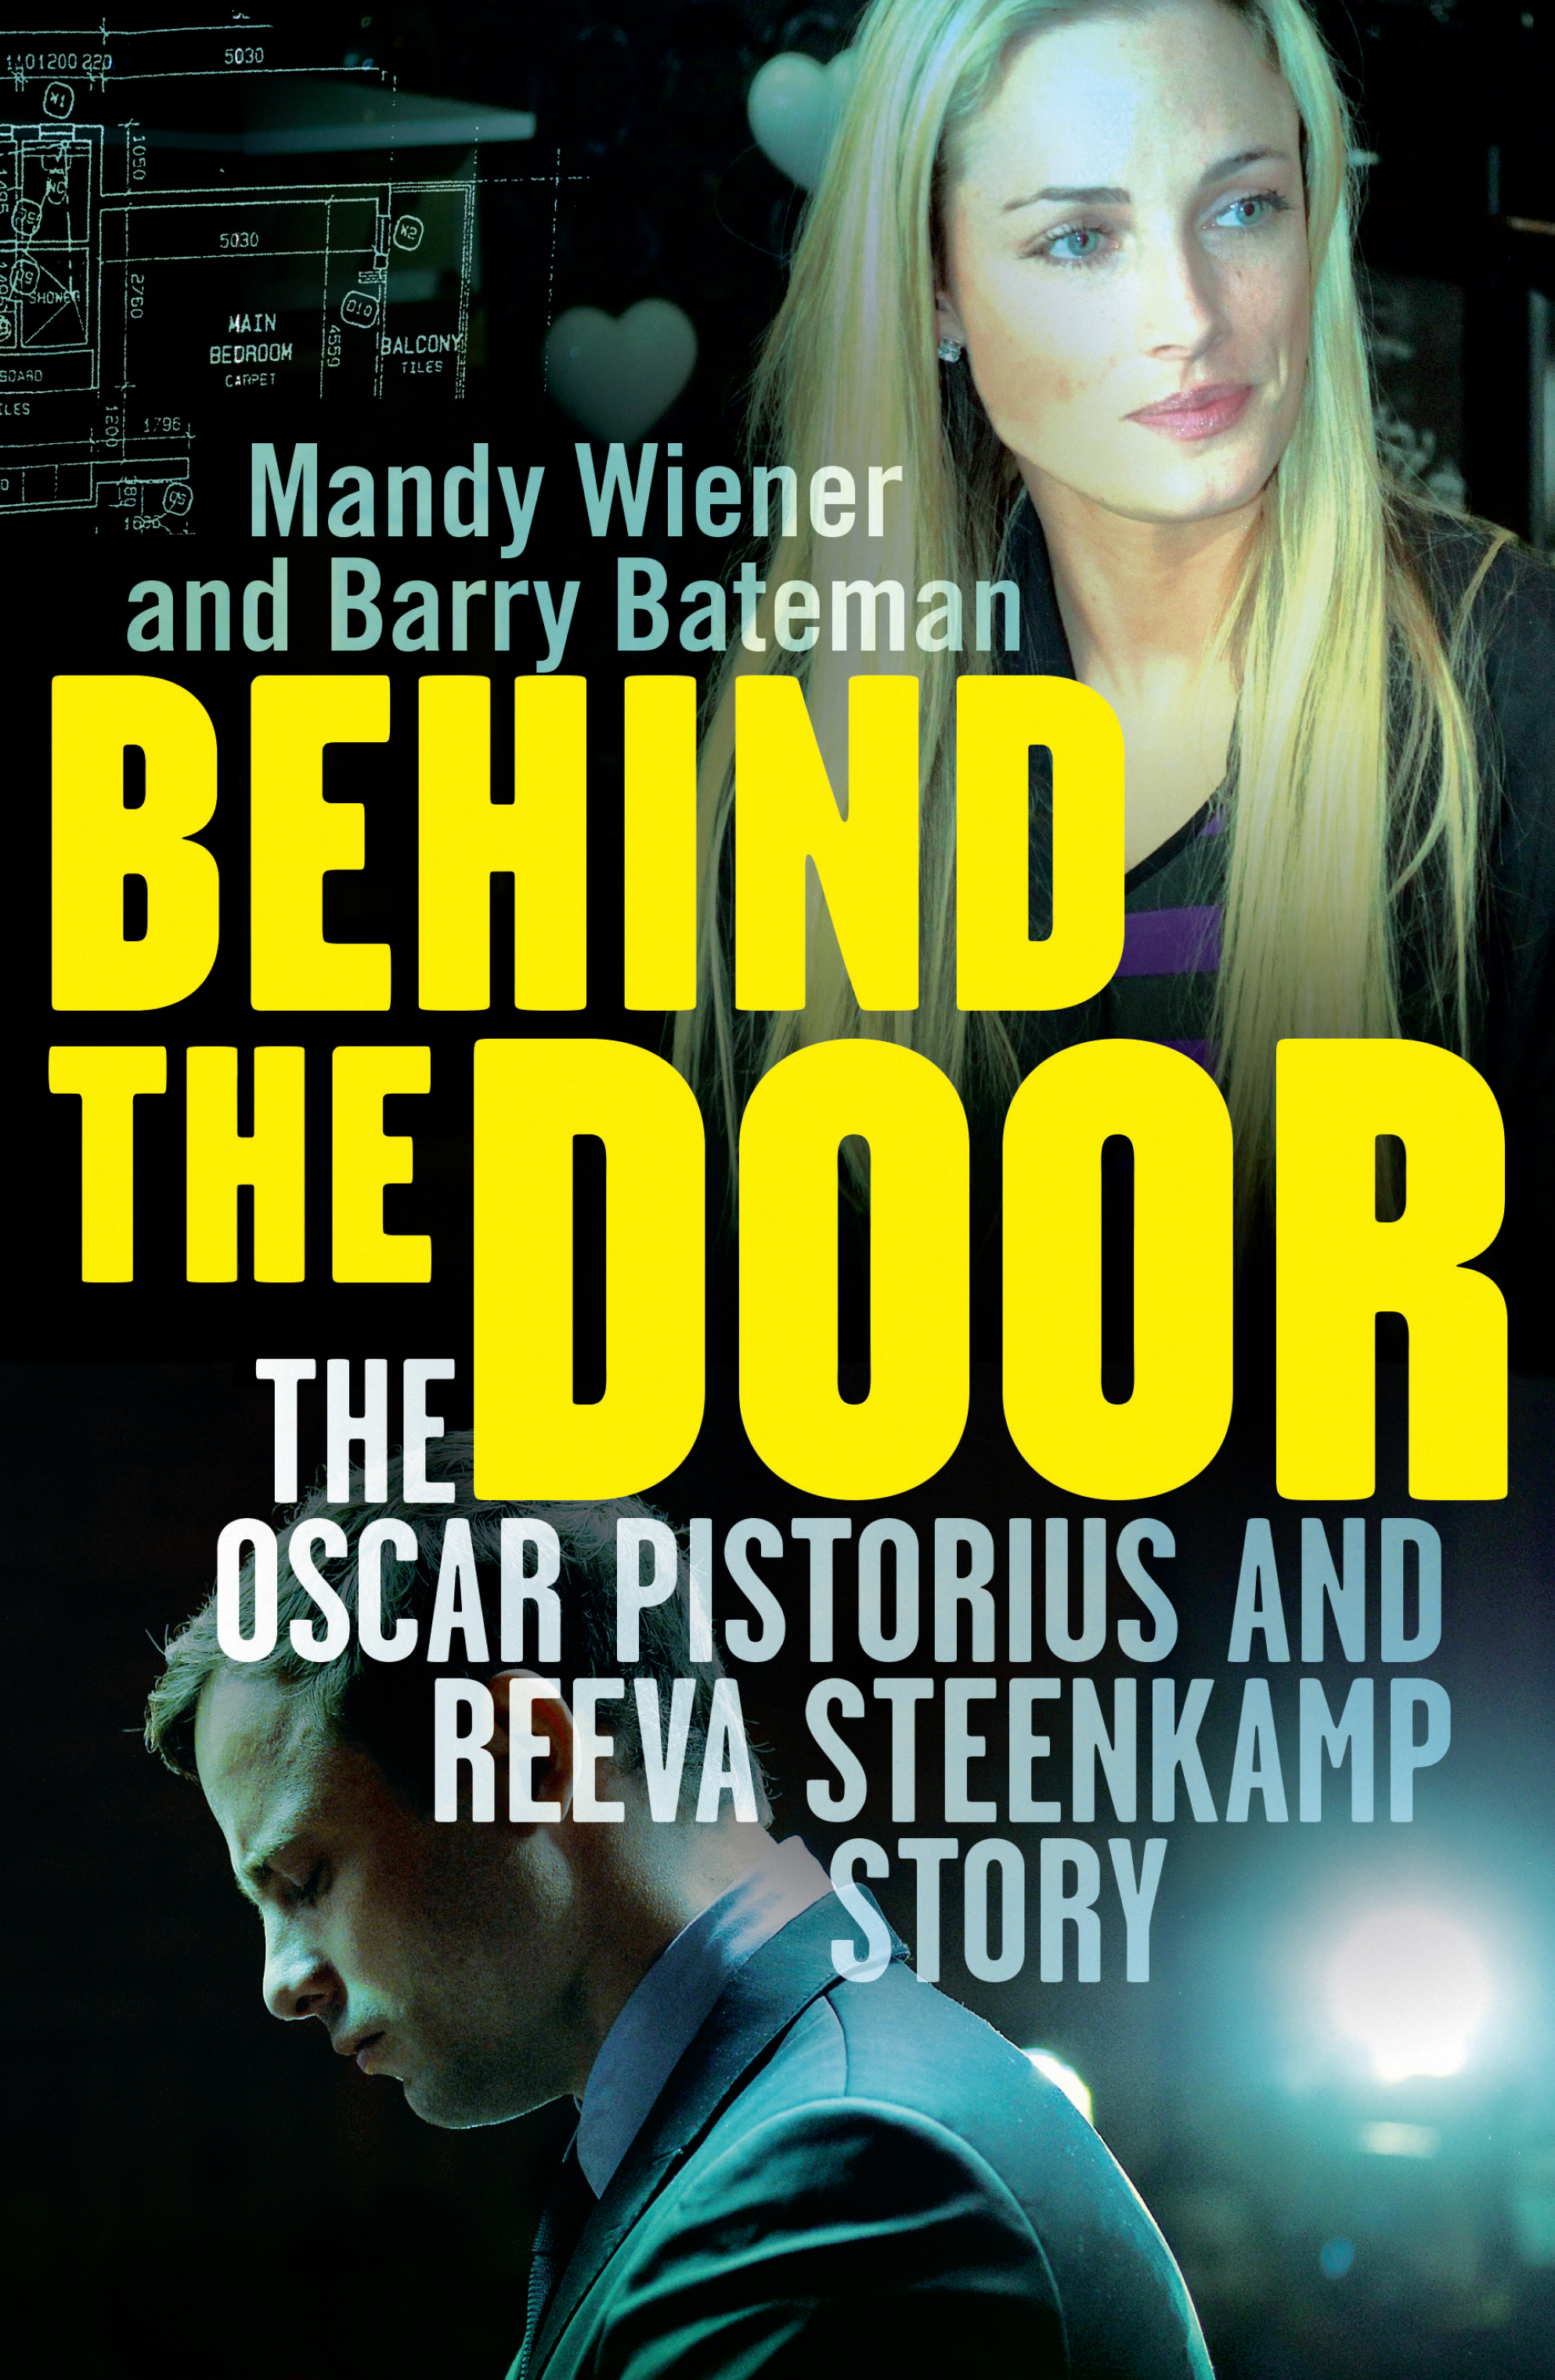 Behind the Door The Oscar Pistorius and Reeva Steenkamp Story